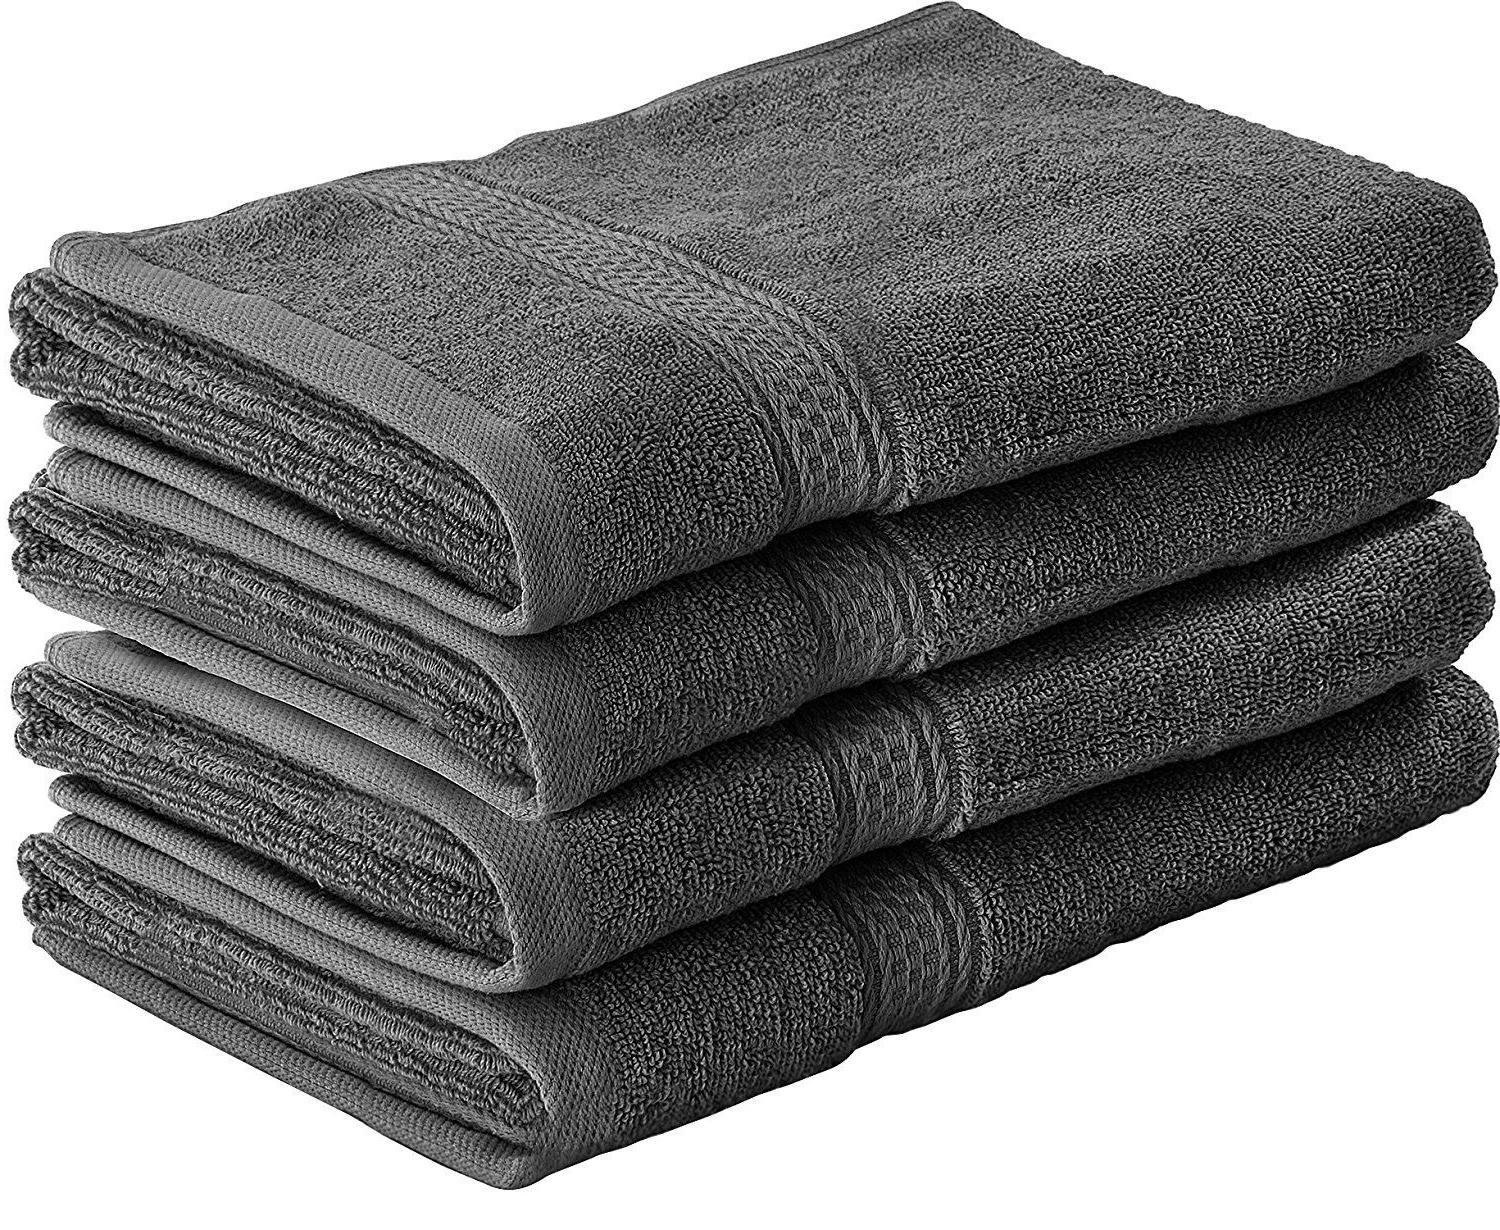 Hand x 28 Cotton Absorbent GSM Towels